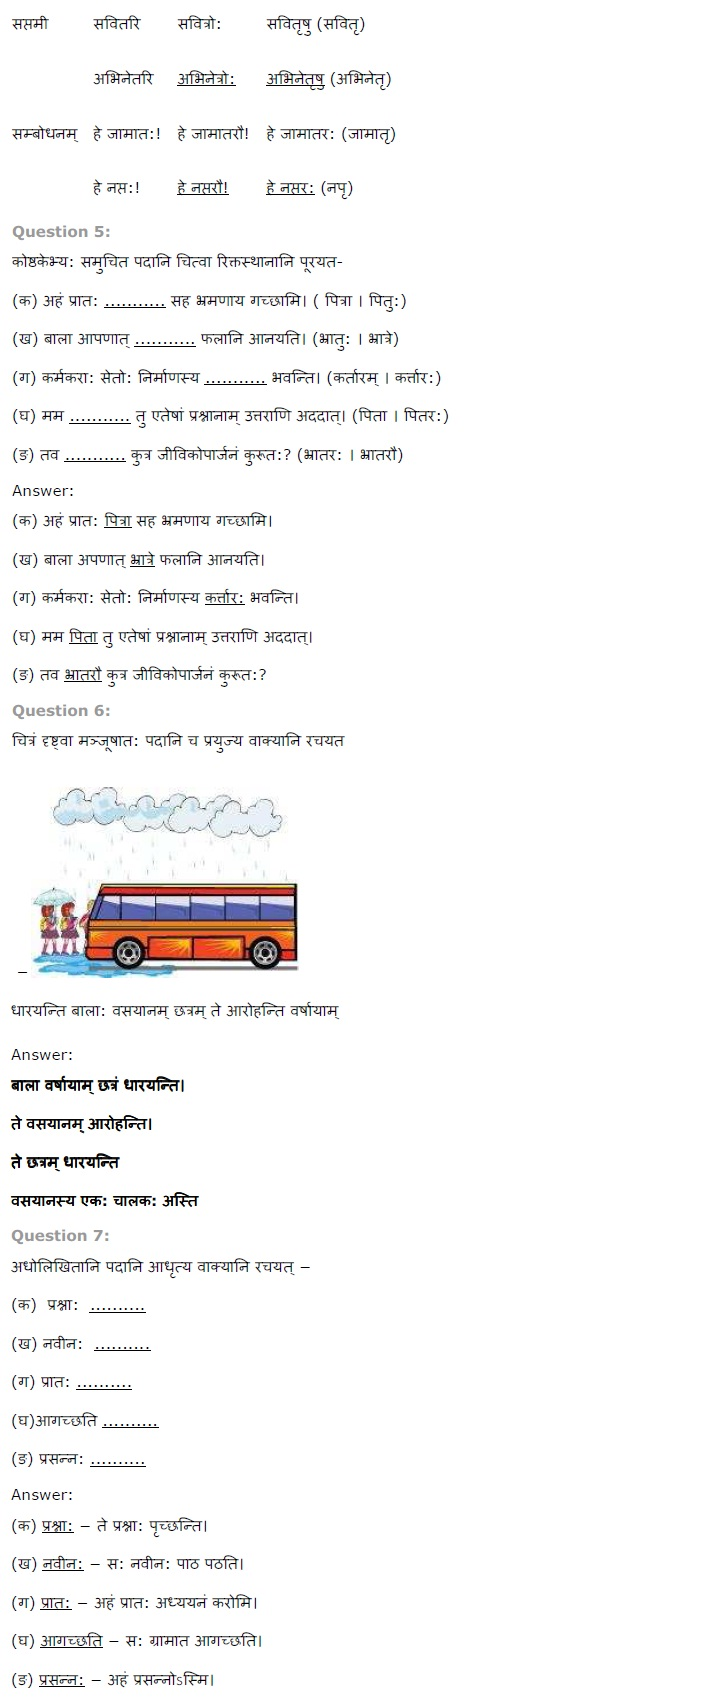 NCERT Solutions for Class 7th Sanskrit Chapter 14 - अनारिकाया जिज्ञासा